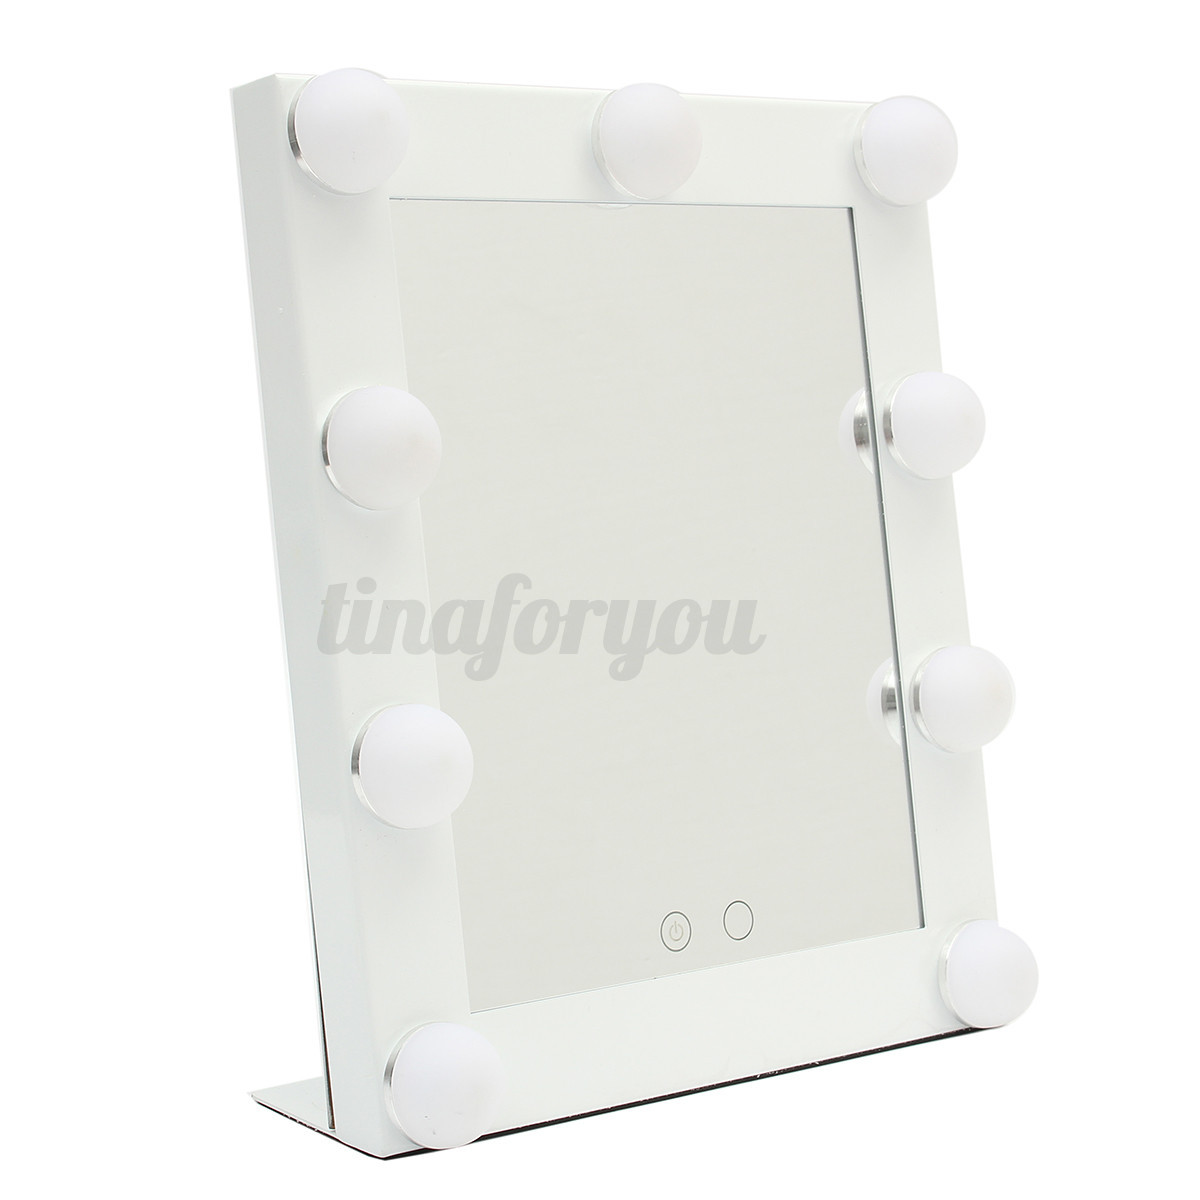 Vanity Lights With Dimmer : Vanity Lighted Hollywood Makeup Mirror with lights Dimmer Stage Beauty Touch eBay